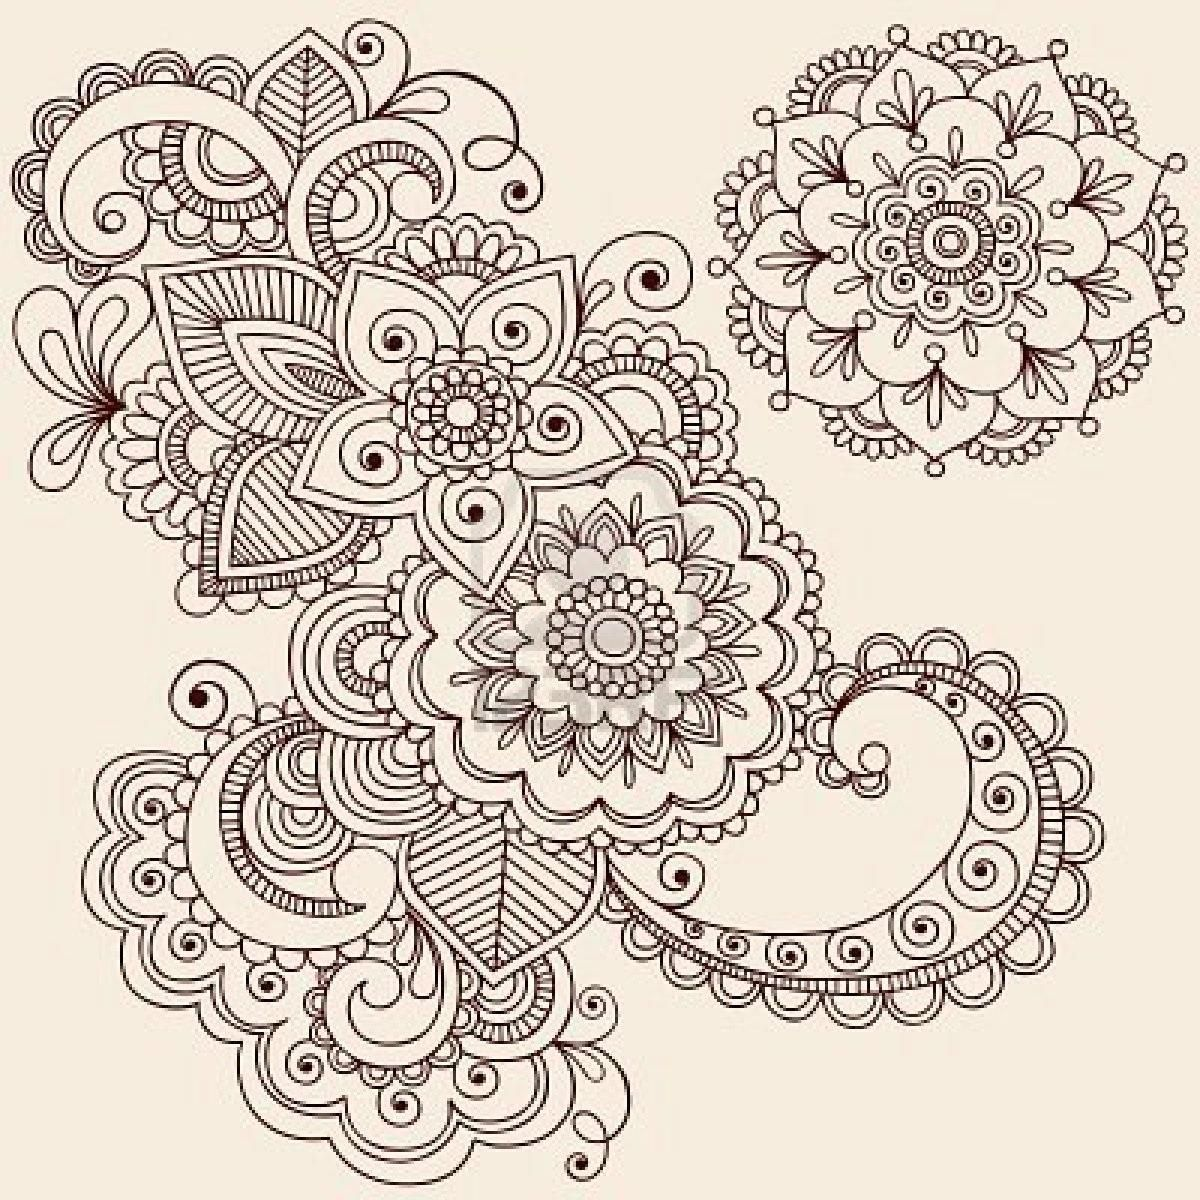 Flowers Motif for Ryan and Diana\'s Menus and Table #s | Inspiration ...